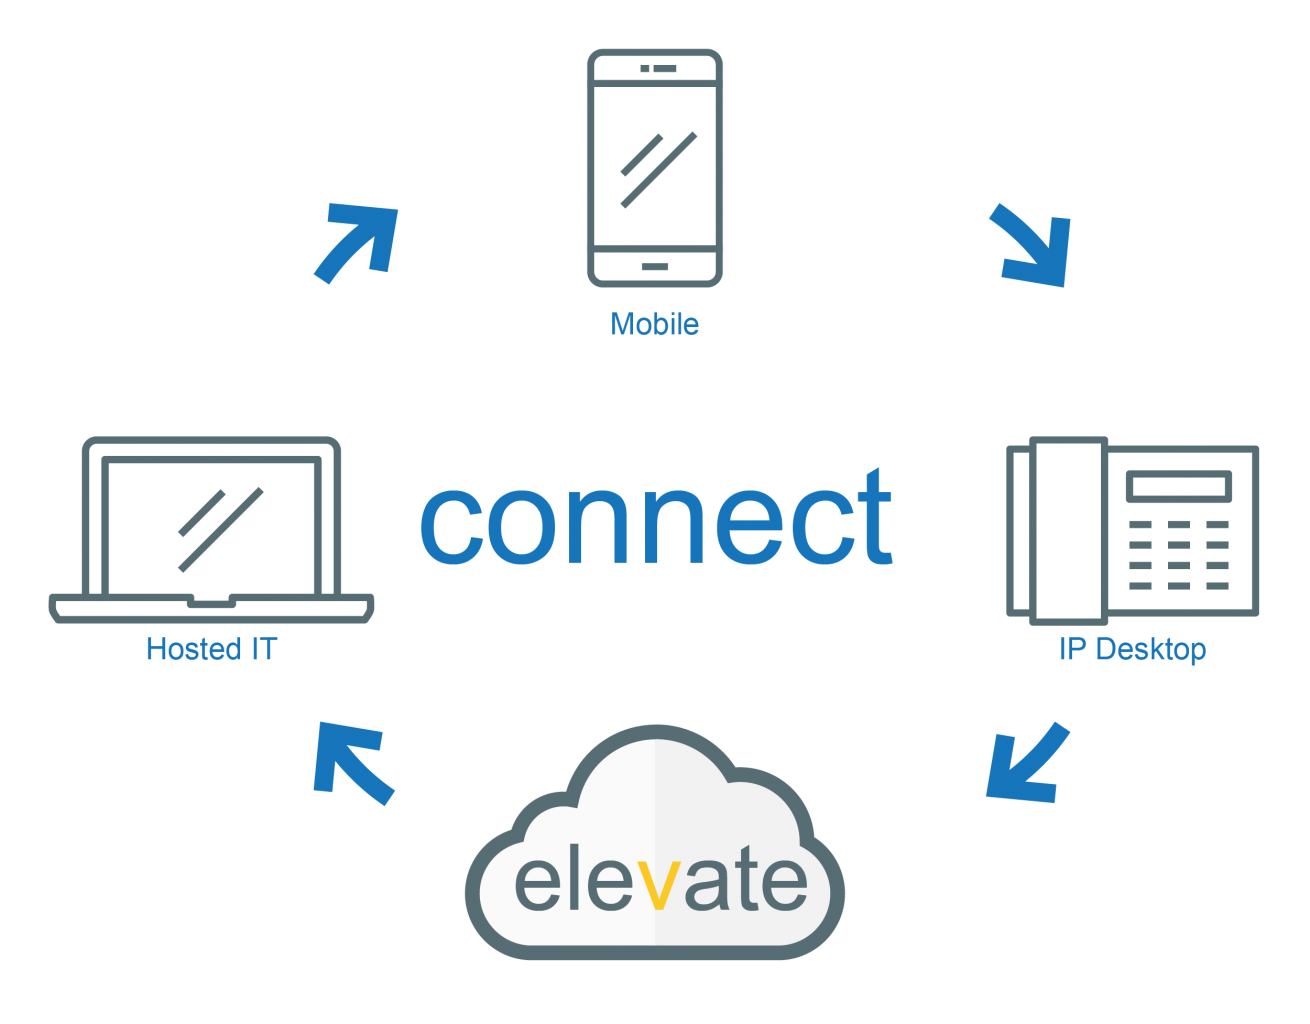 Elevate Cloud Hosted and Mobile Phone Connectivity infographic